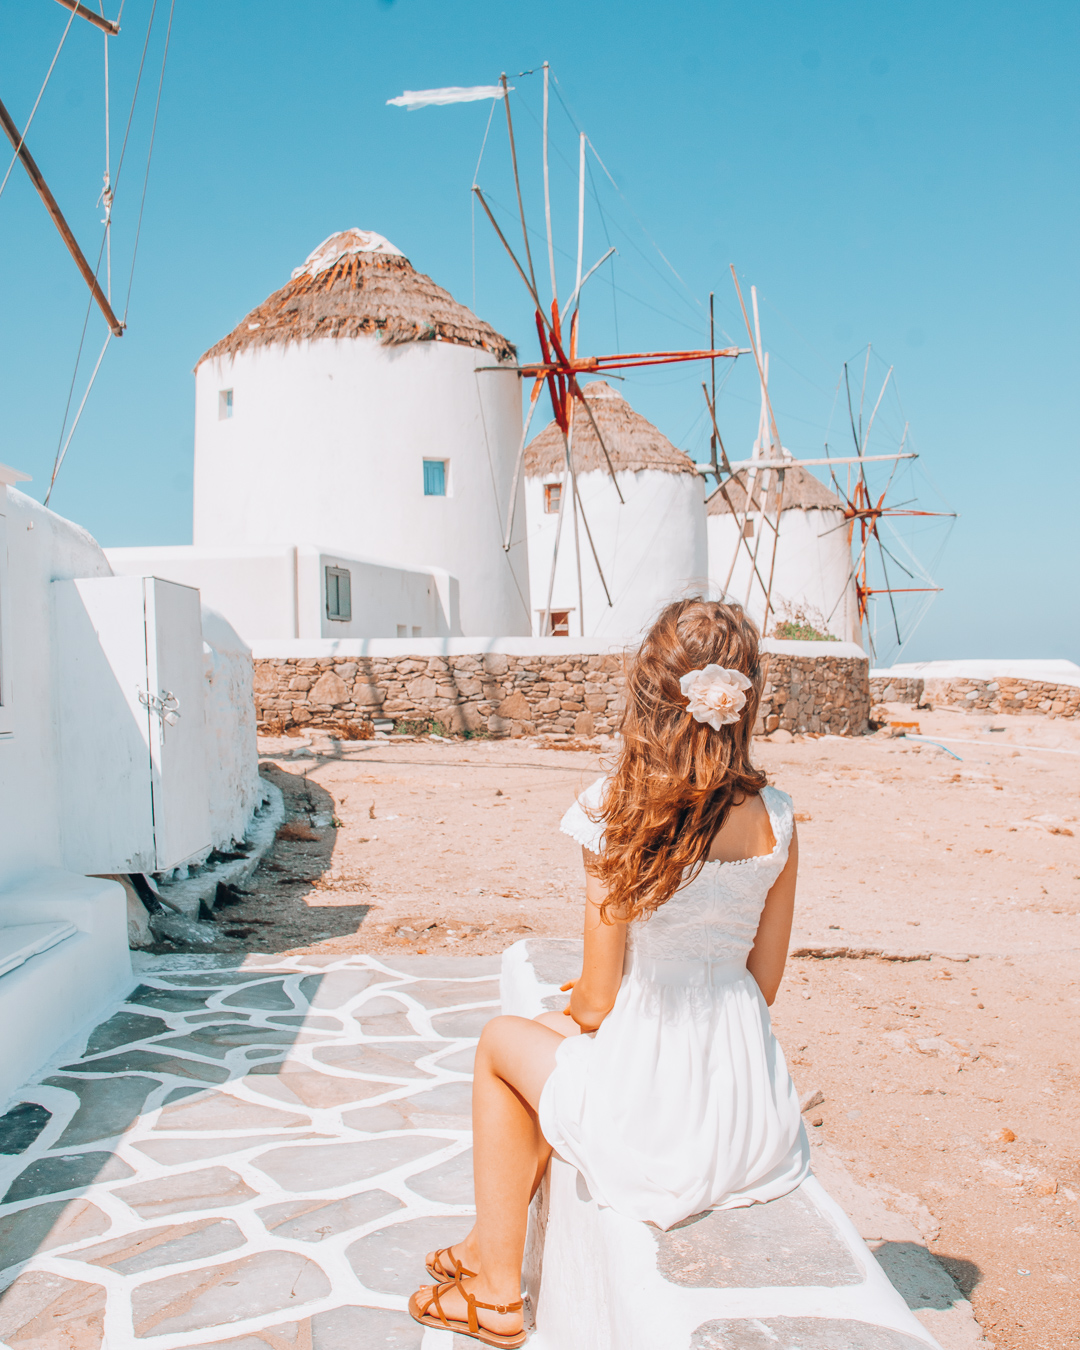 Windmills in Mykonos and a girl looking at them